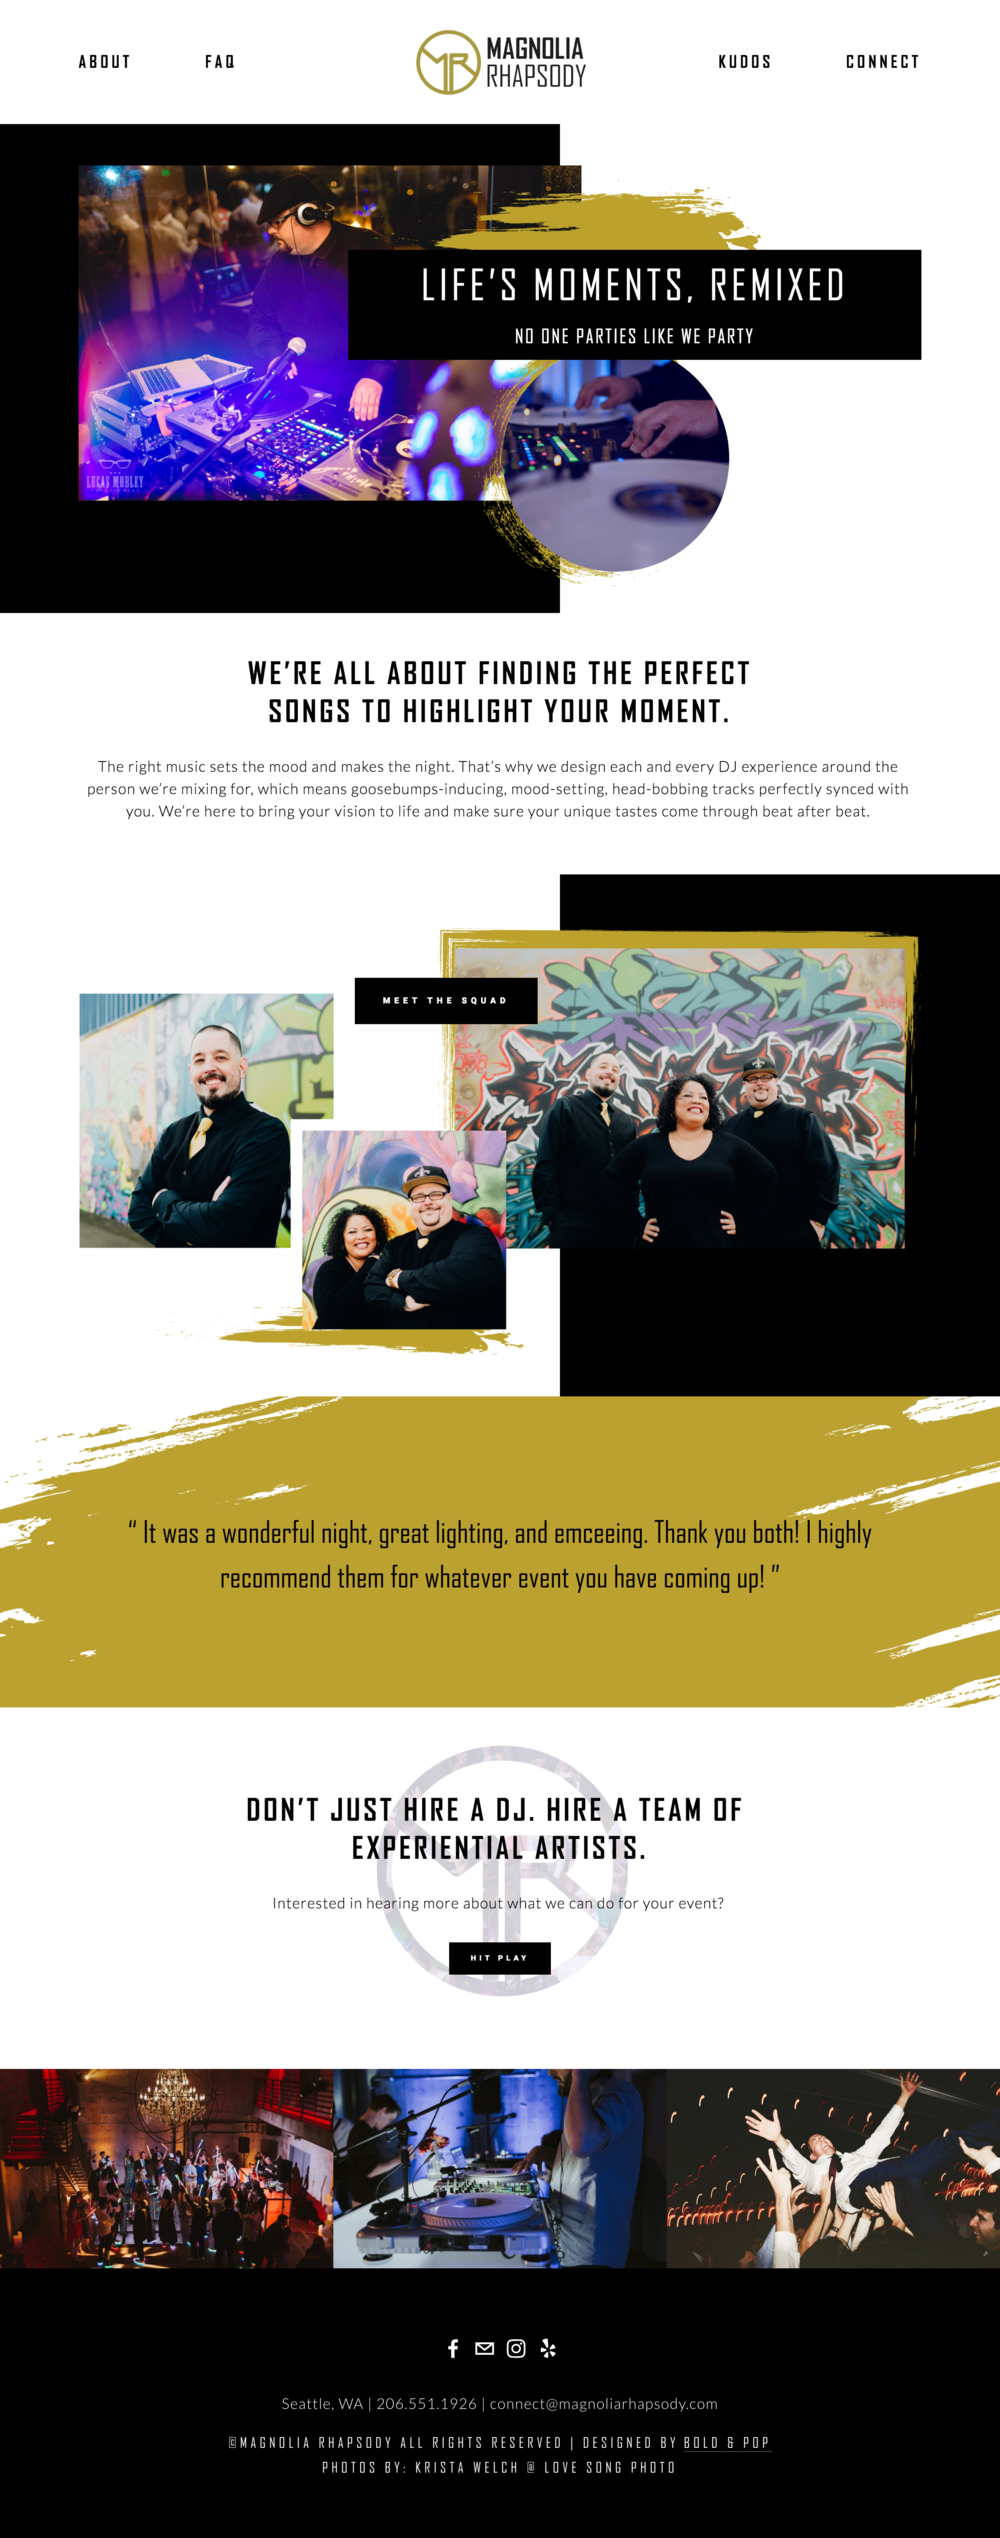 Bold & Pop : Magnolia Rhapsody Squarespace Website Design